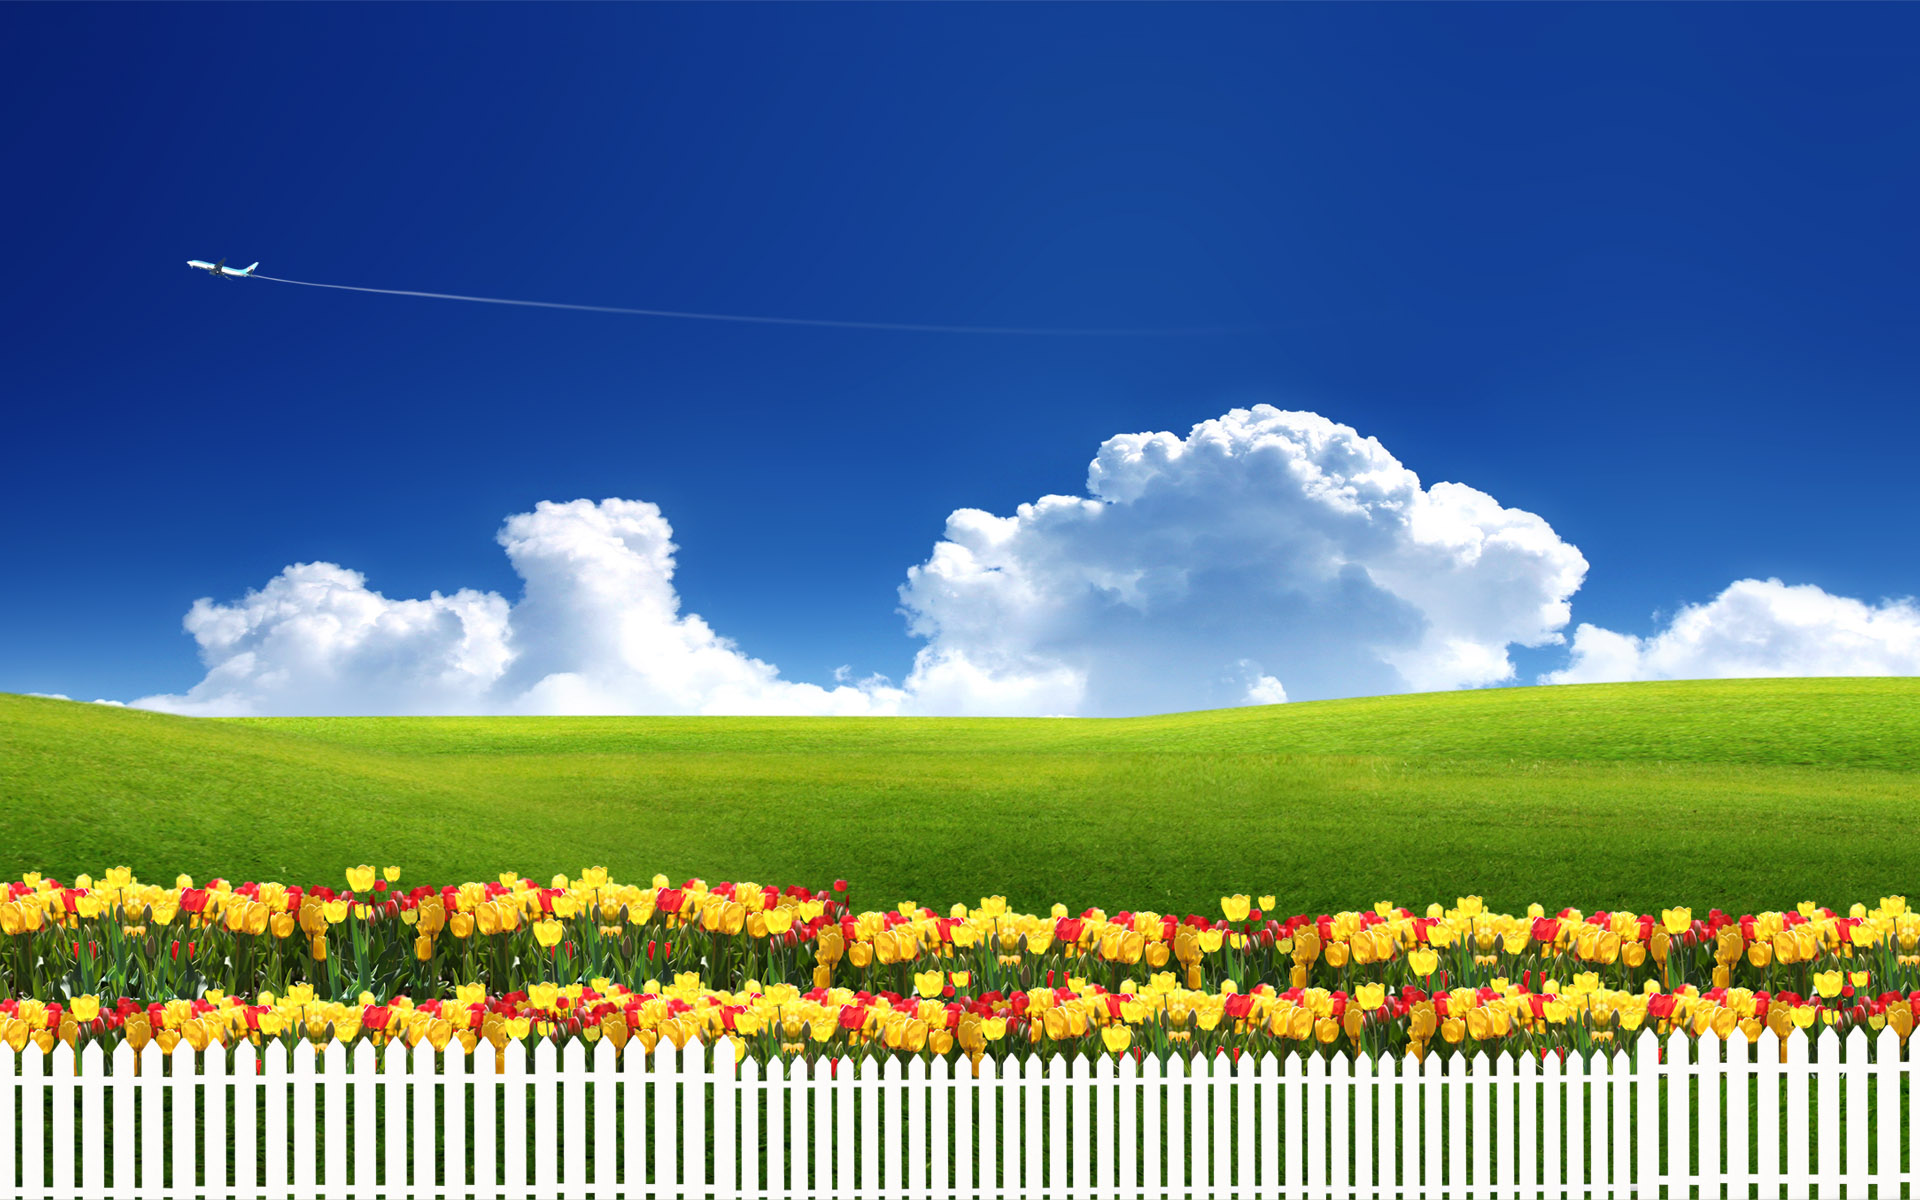 HOME SKY HD WALLPAPER BACKGROUNDSHDIMAGESSEARCH WALLPAPER Search 1920x1200